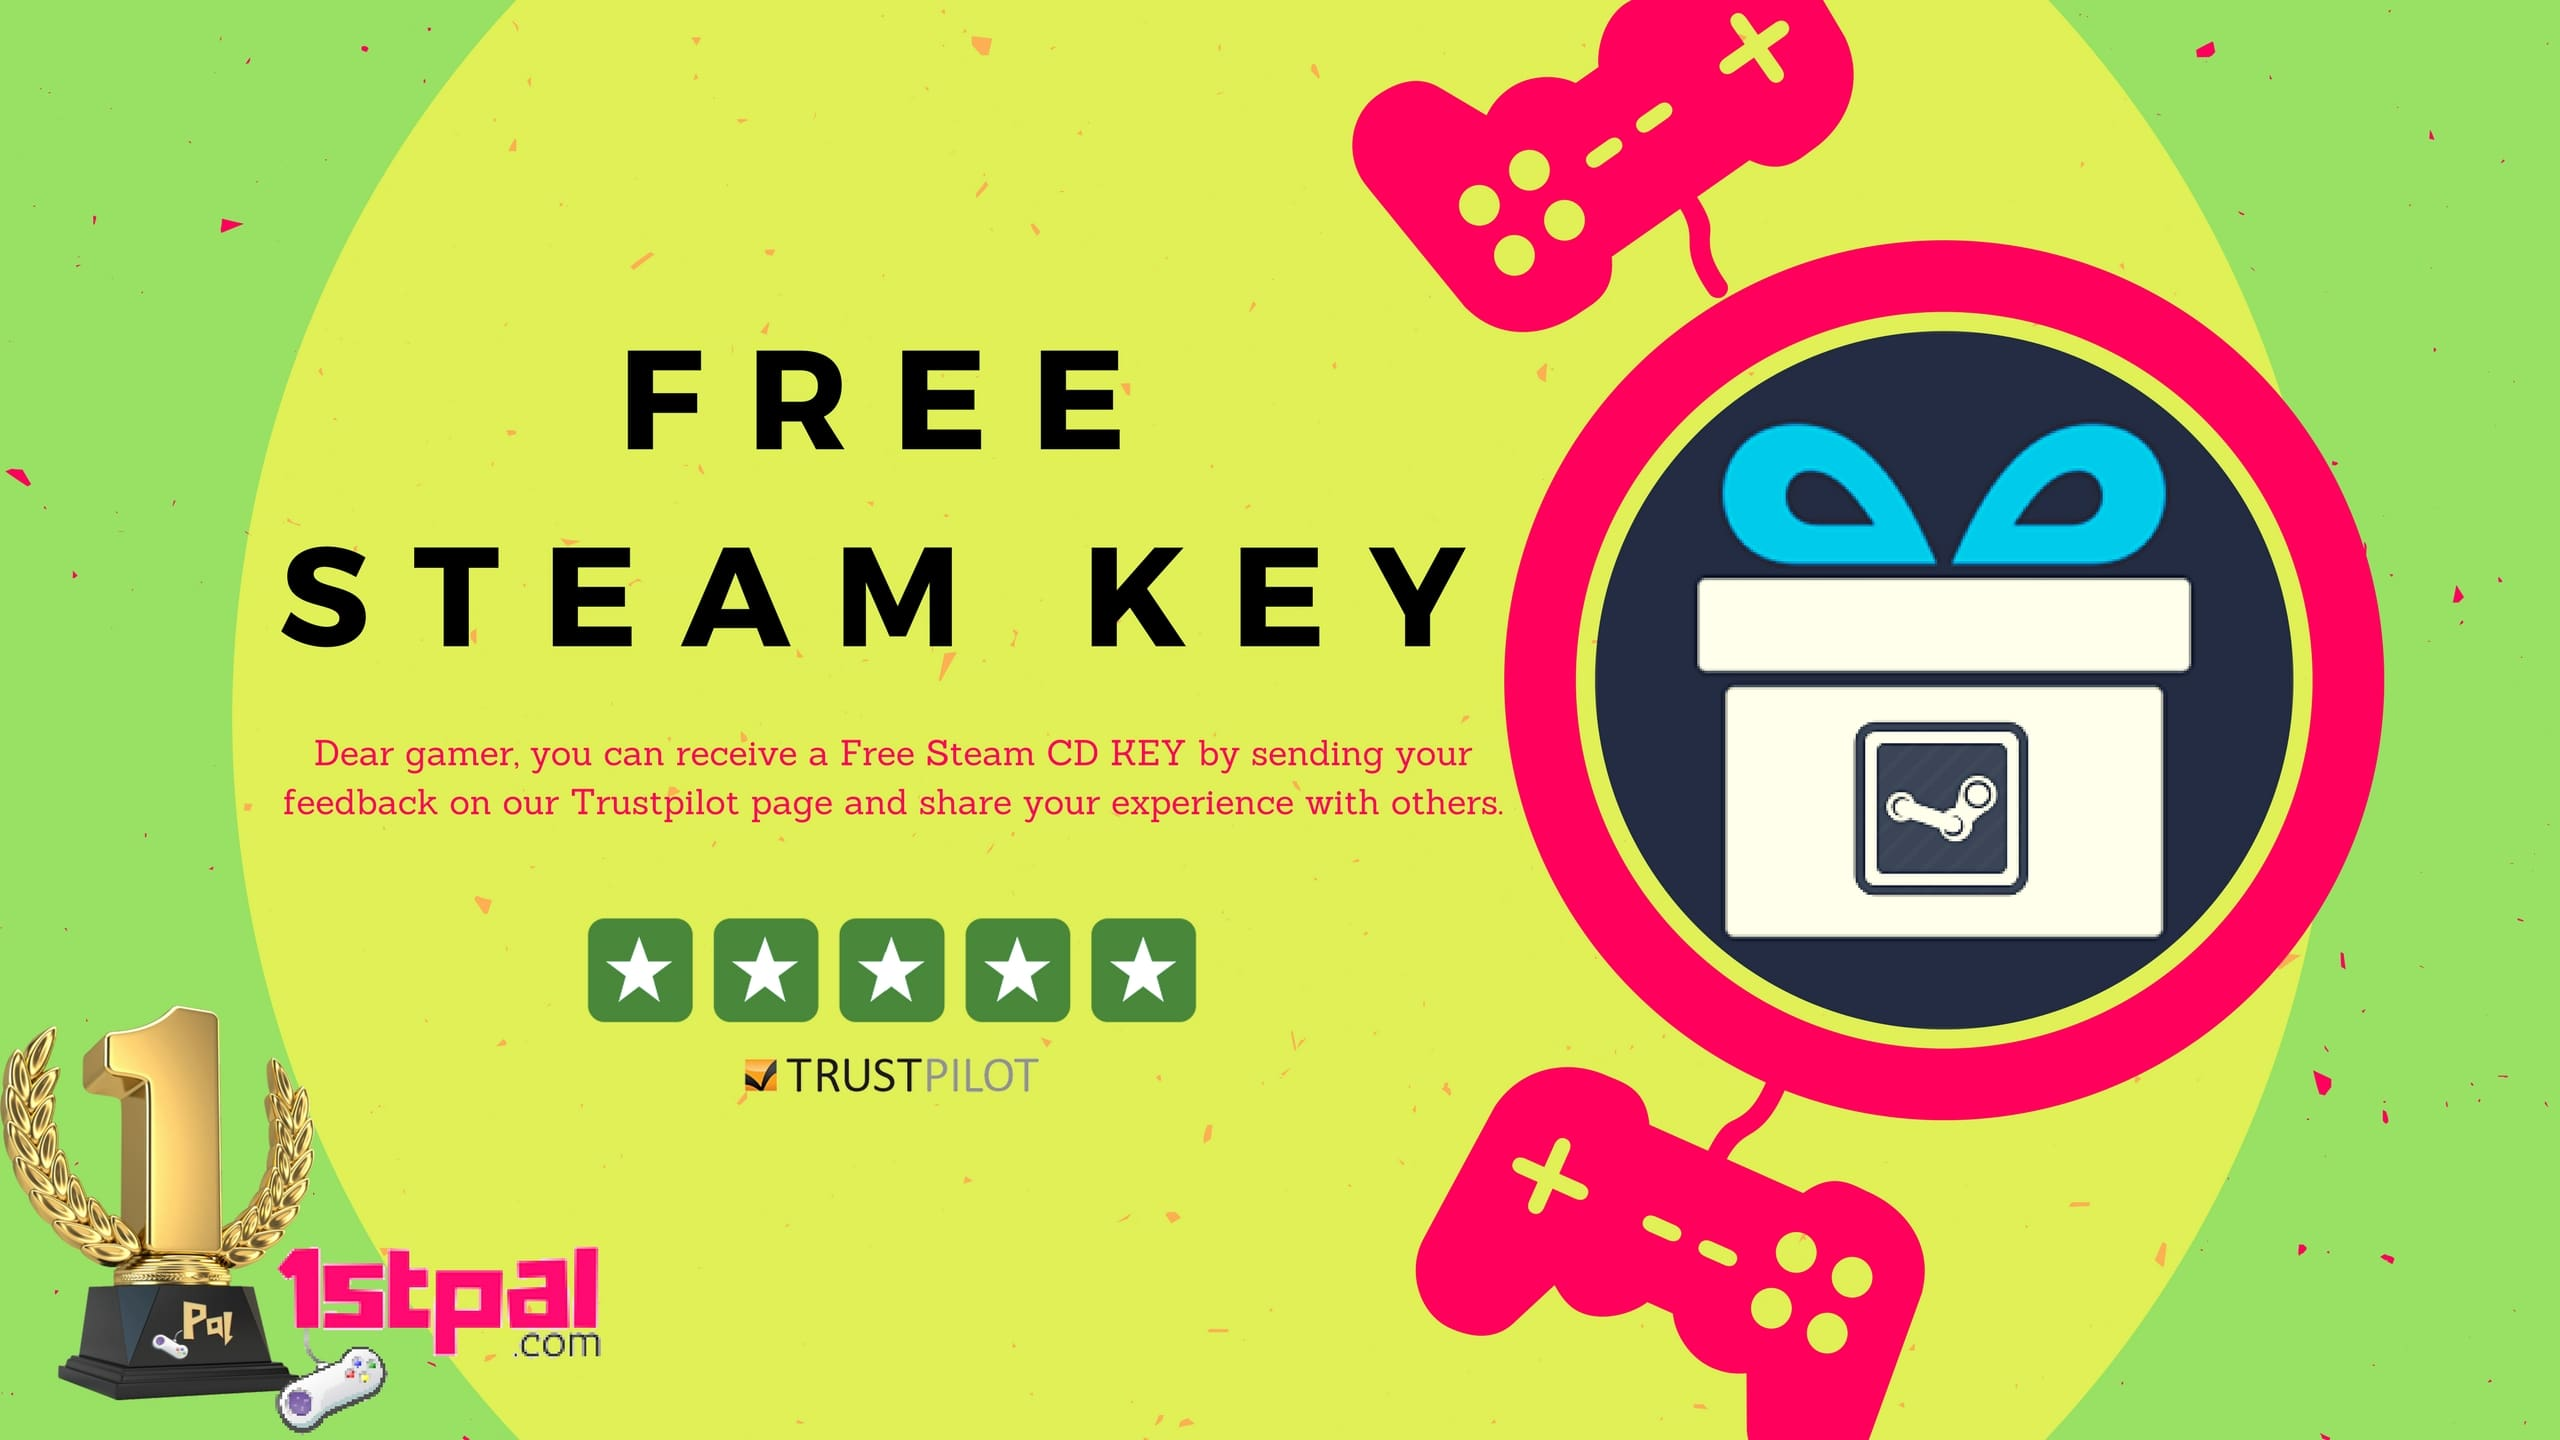 Free Steam CD KEY